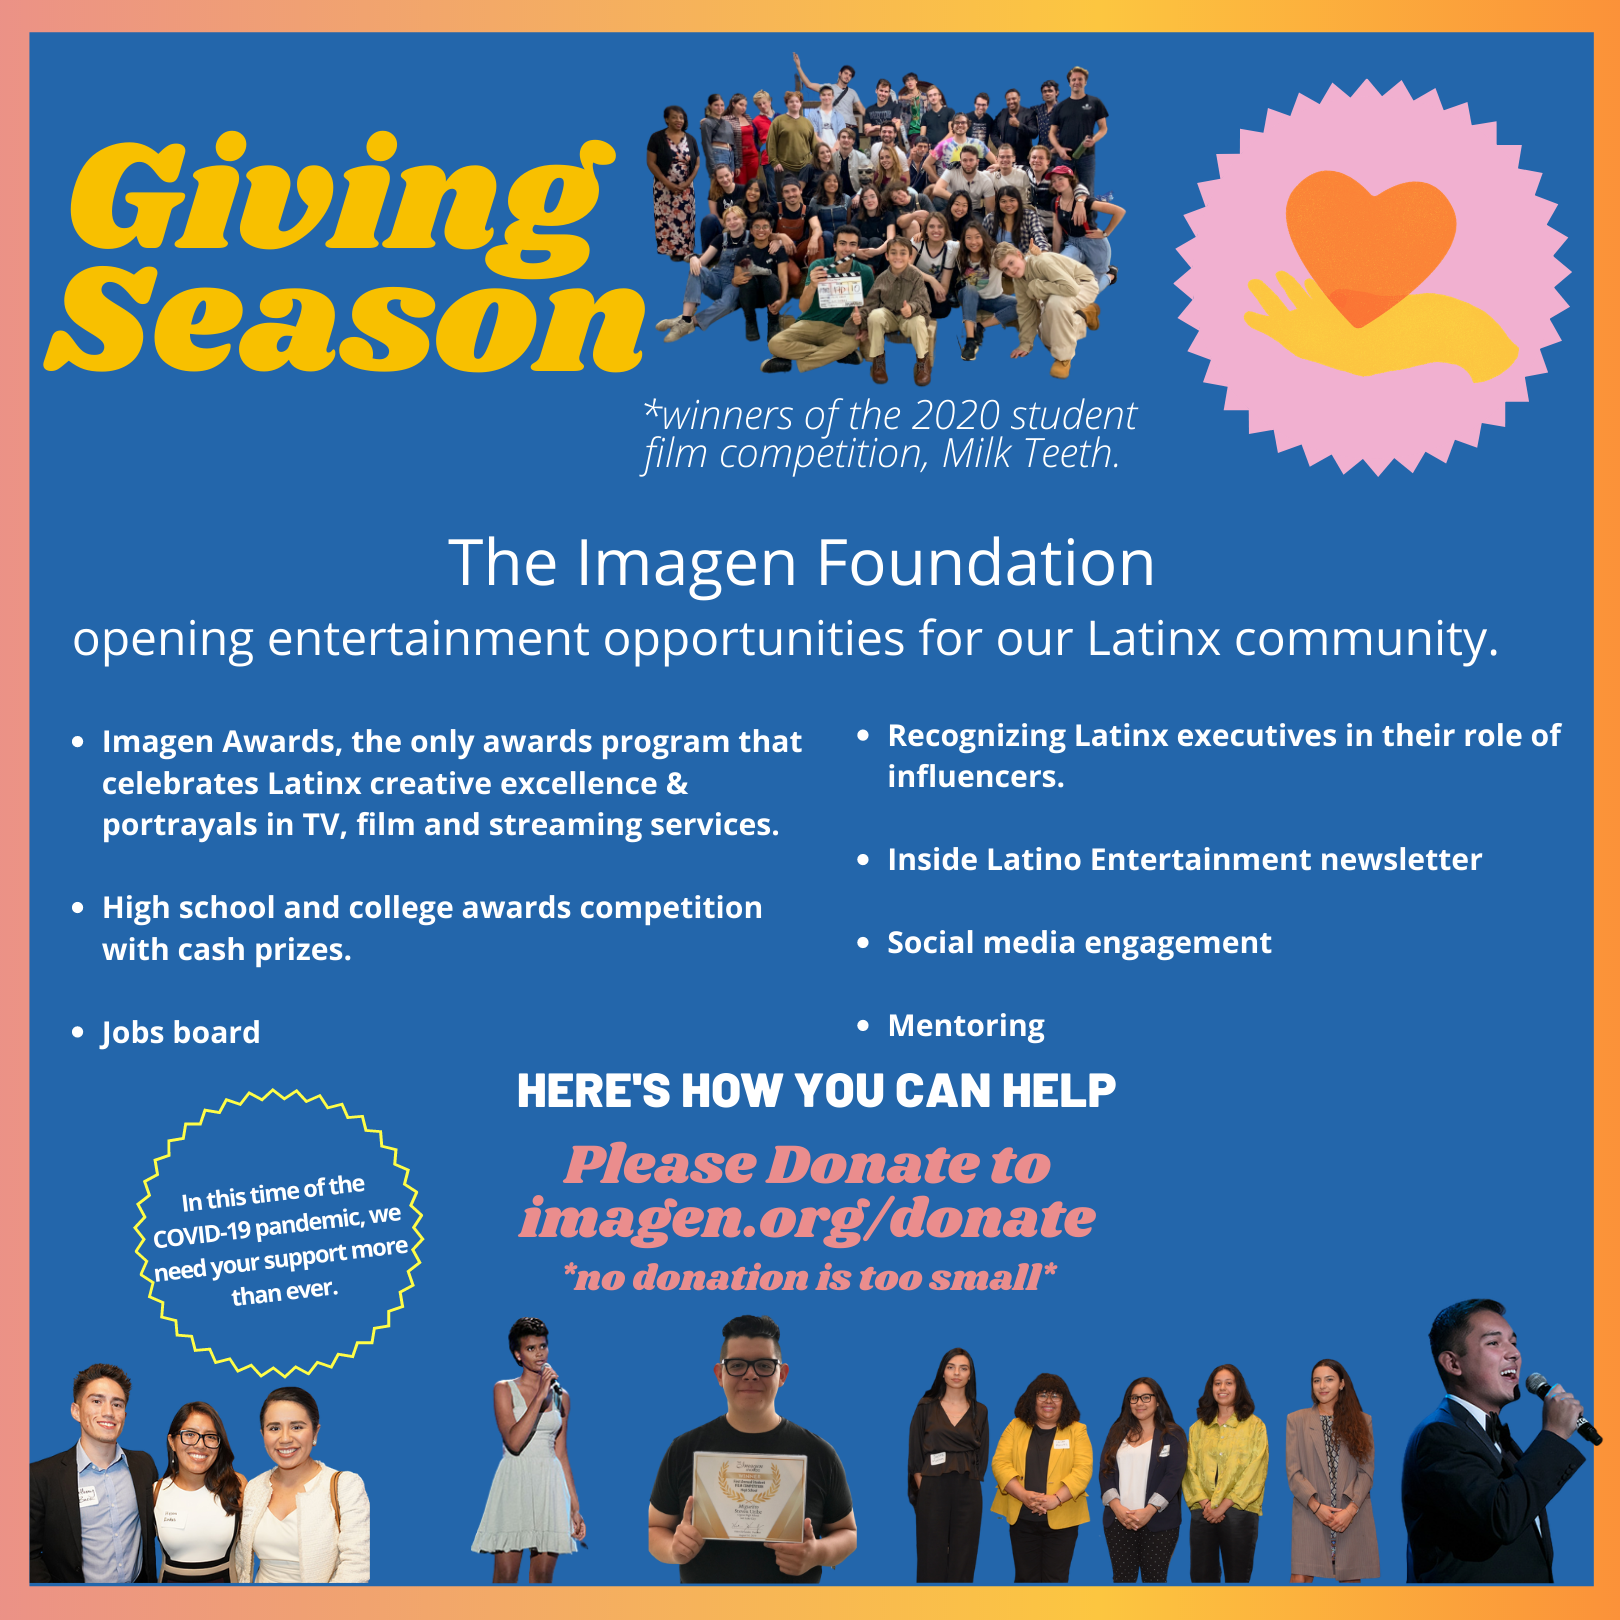 Please consider making a donation to the Imagen Foundation